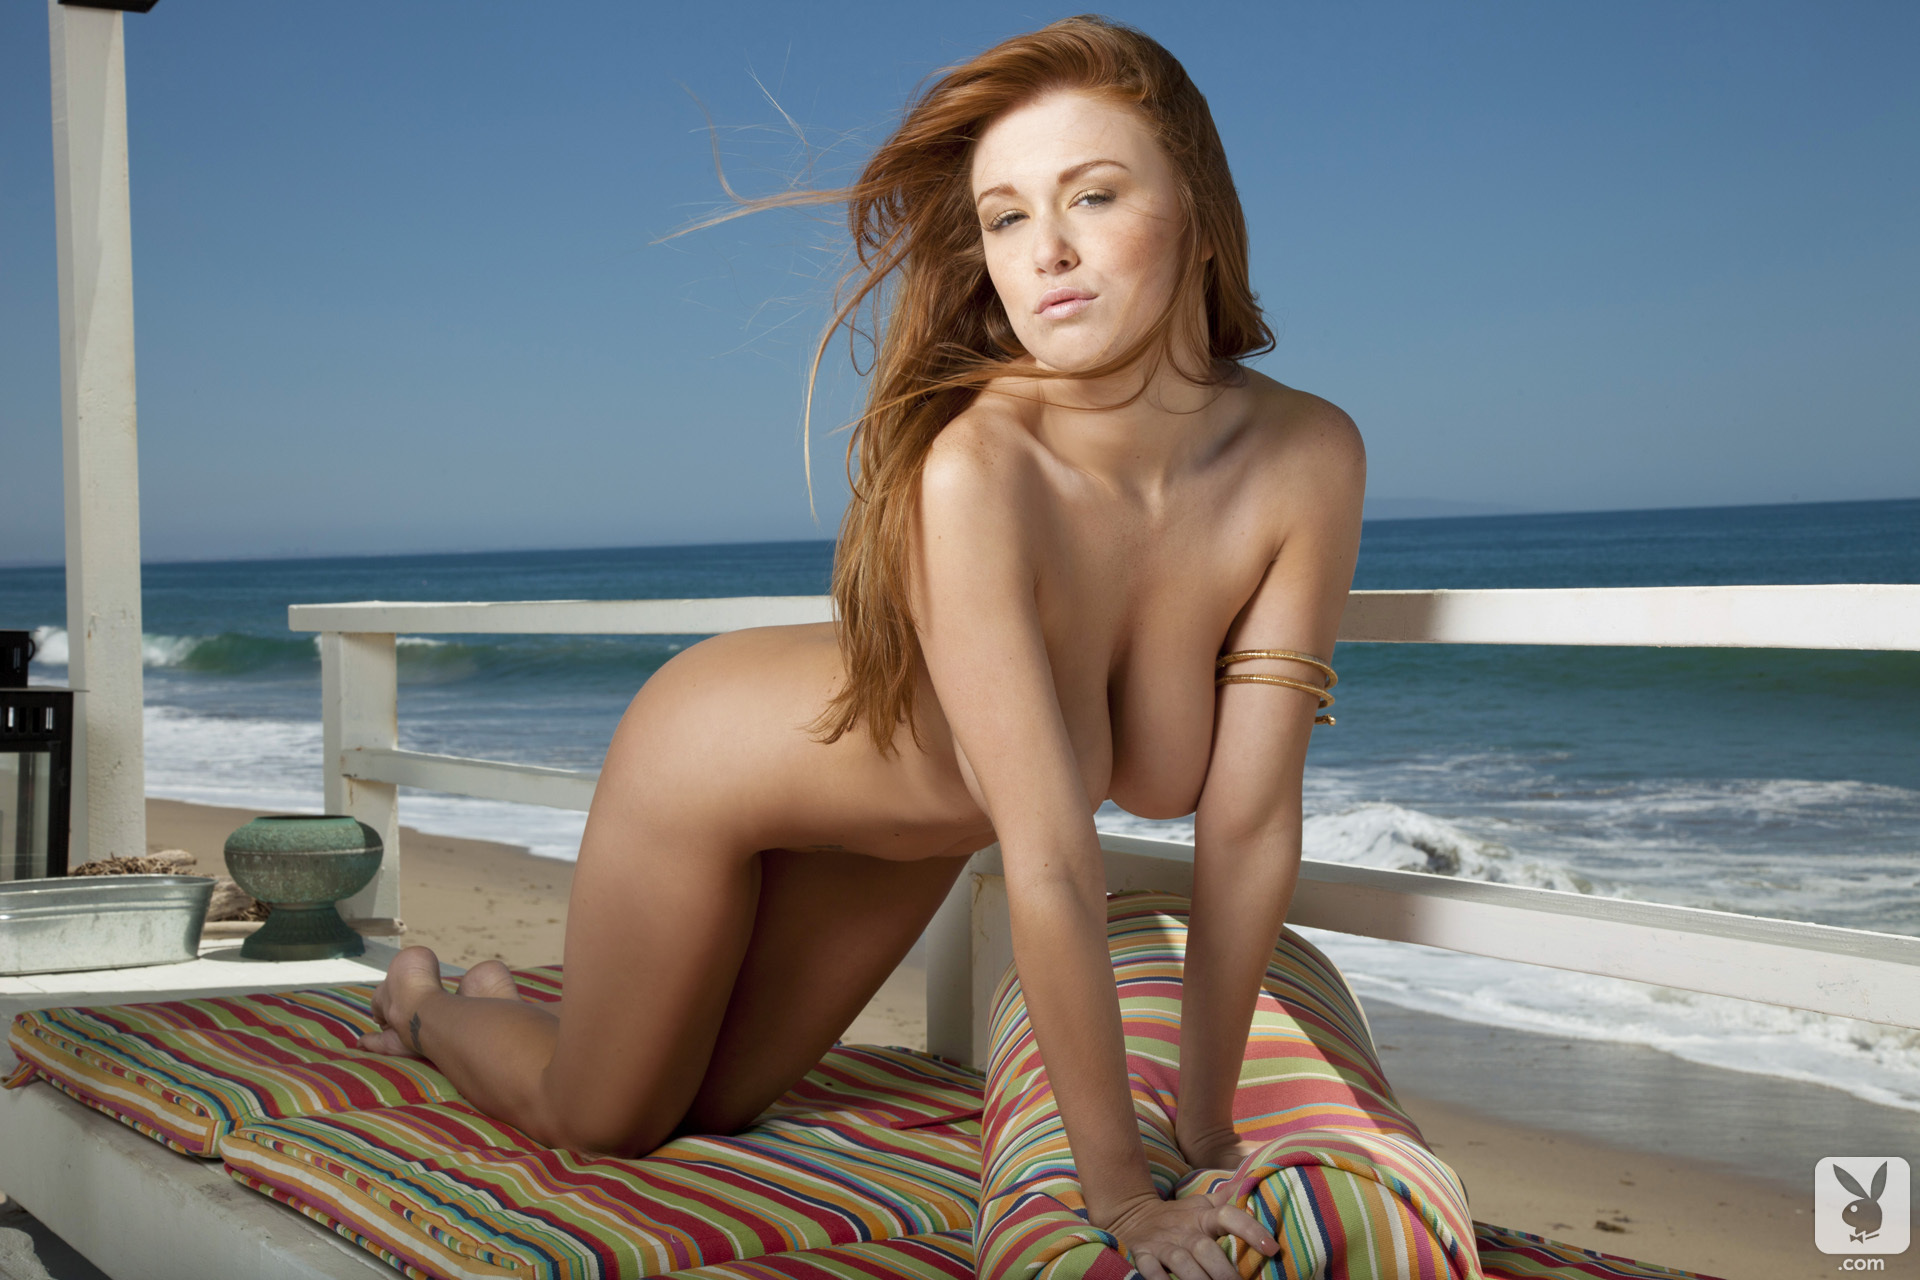 leanna-decker-bikini-boobs-redhead-seaside-playboy-21